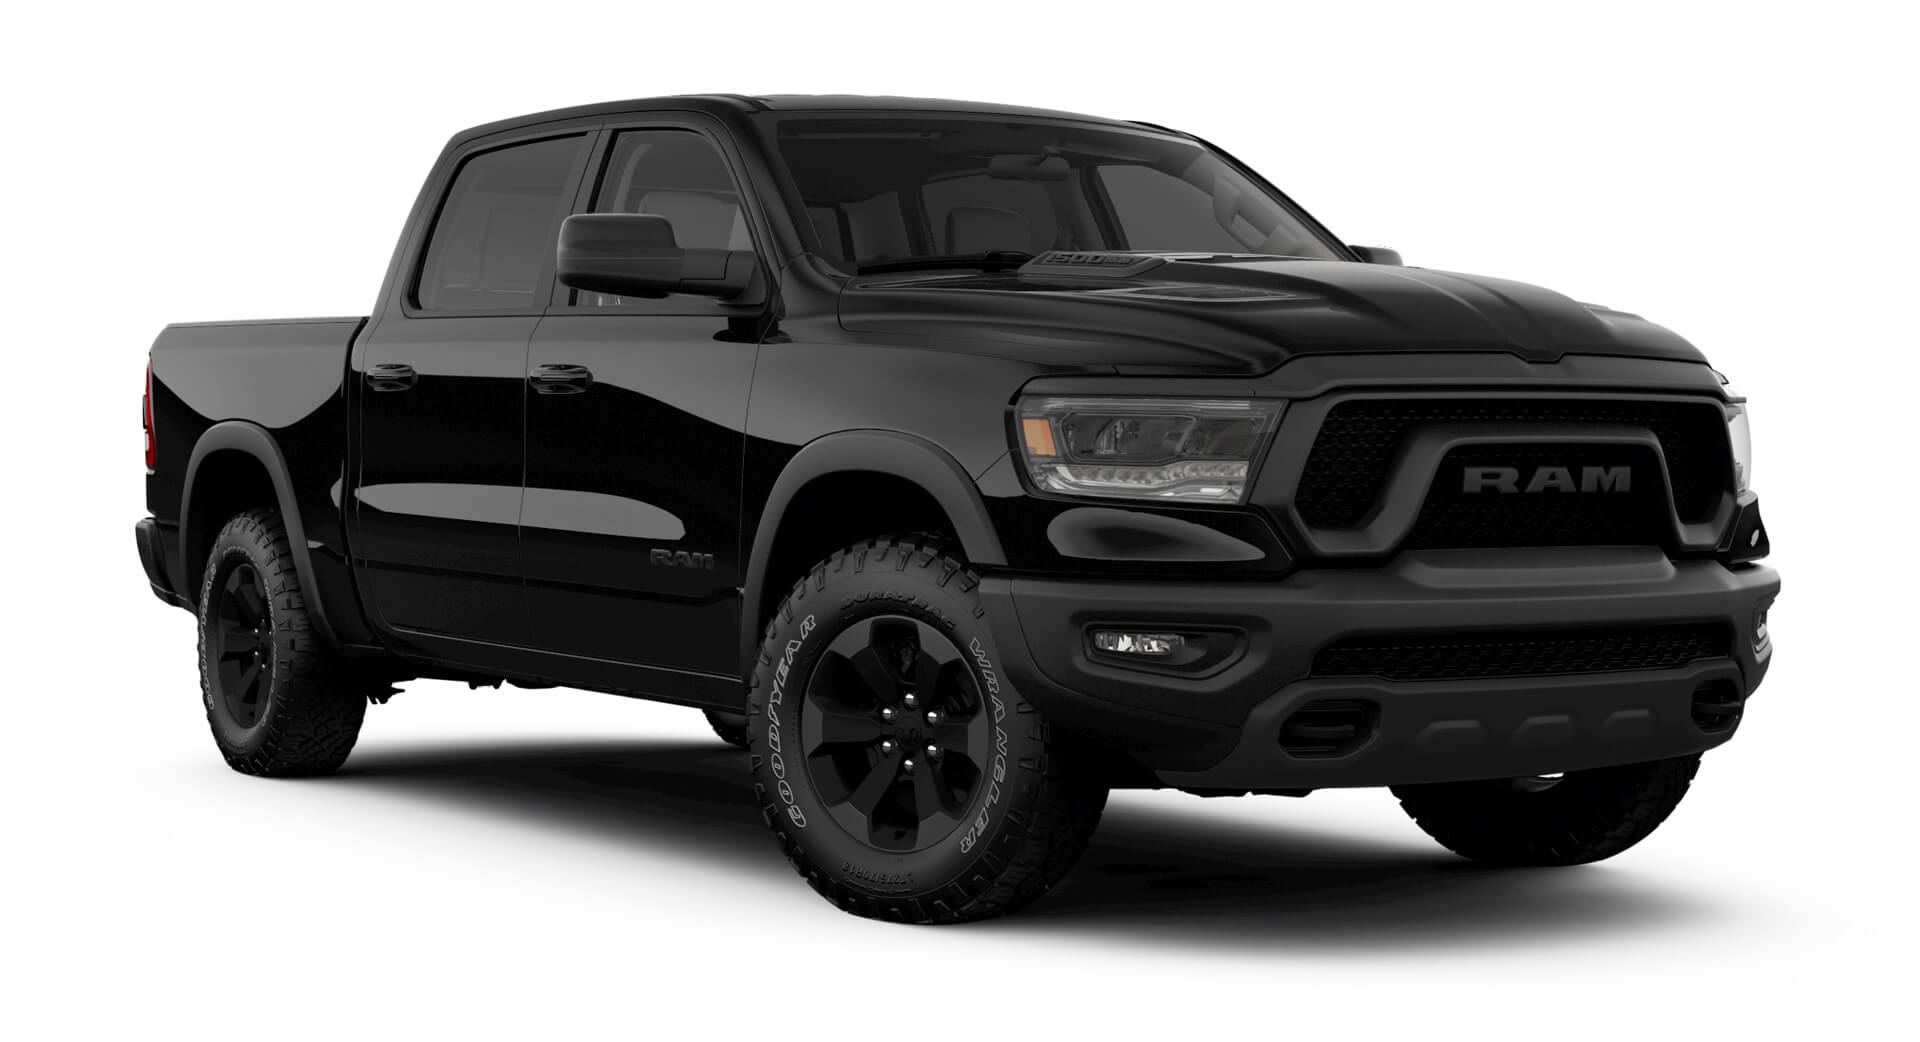 Ram 1500 Rebel Black